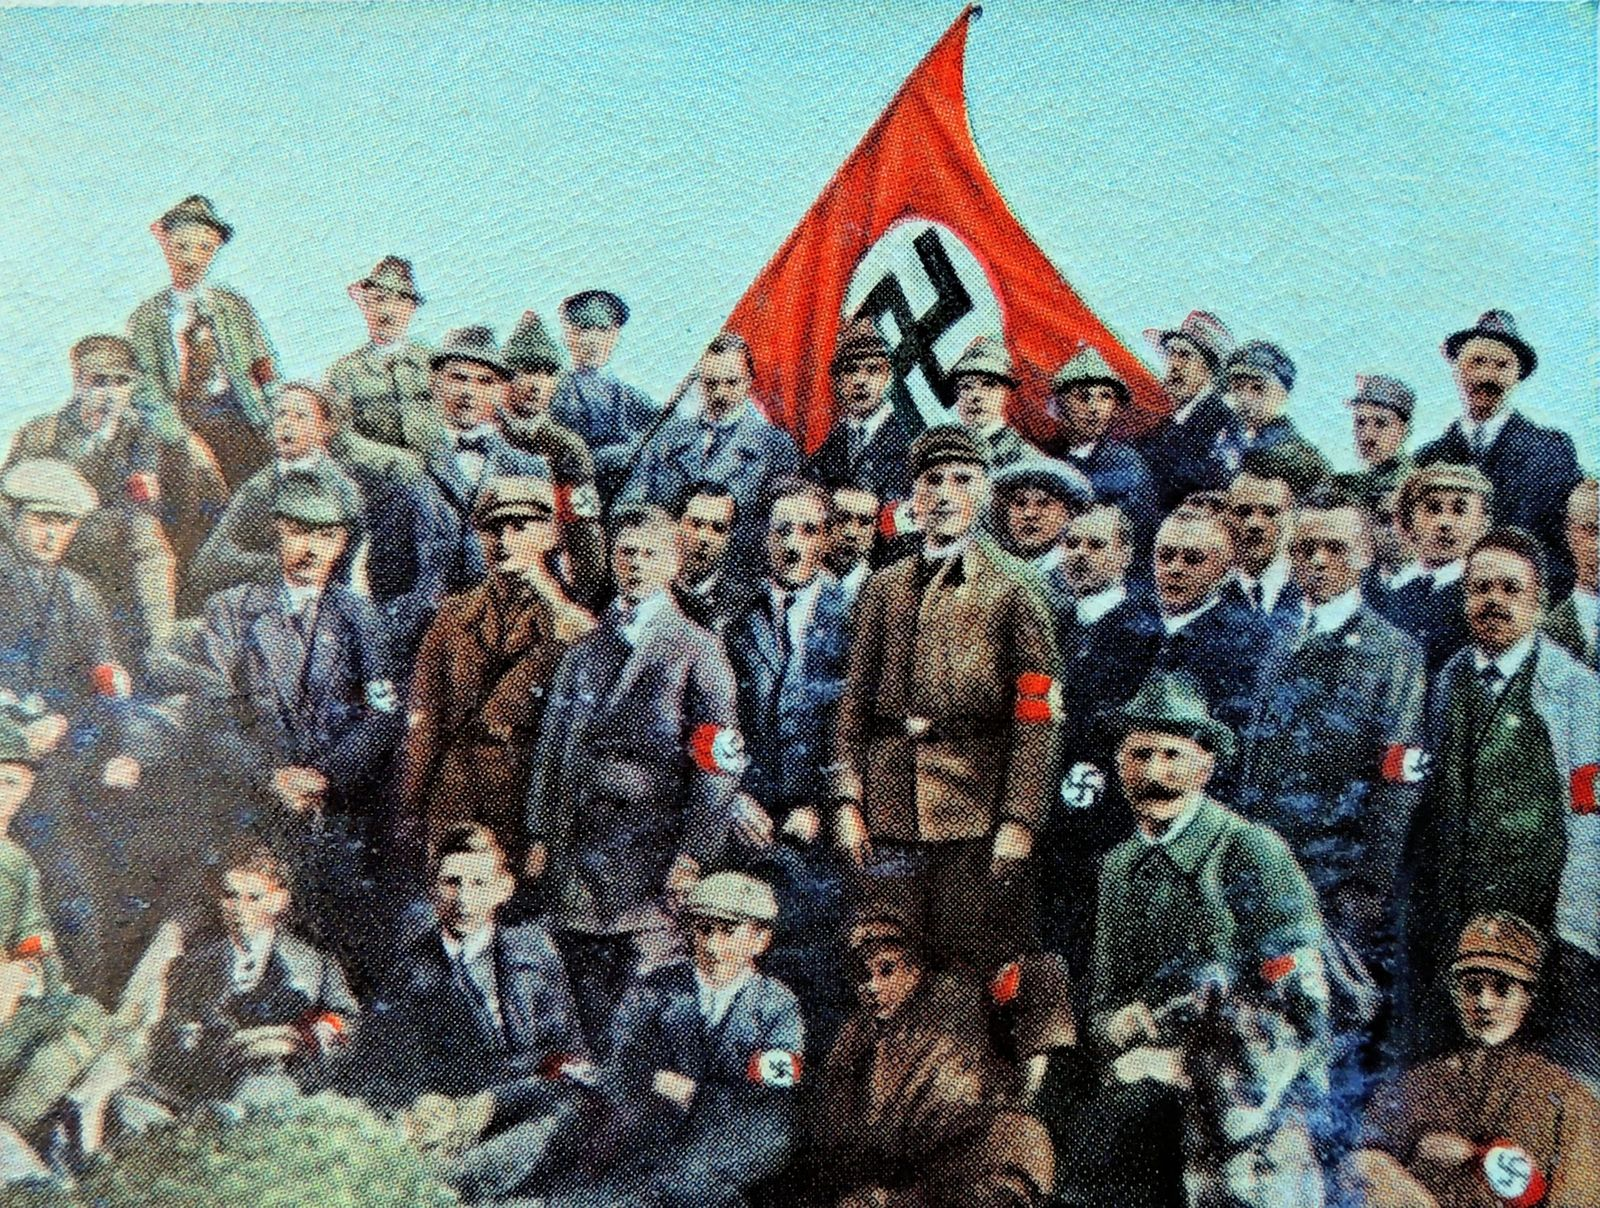 Nazi march from Coburg 1922